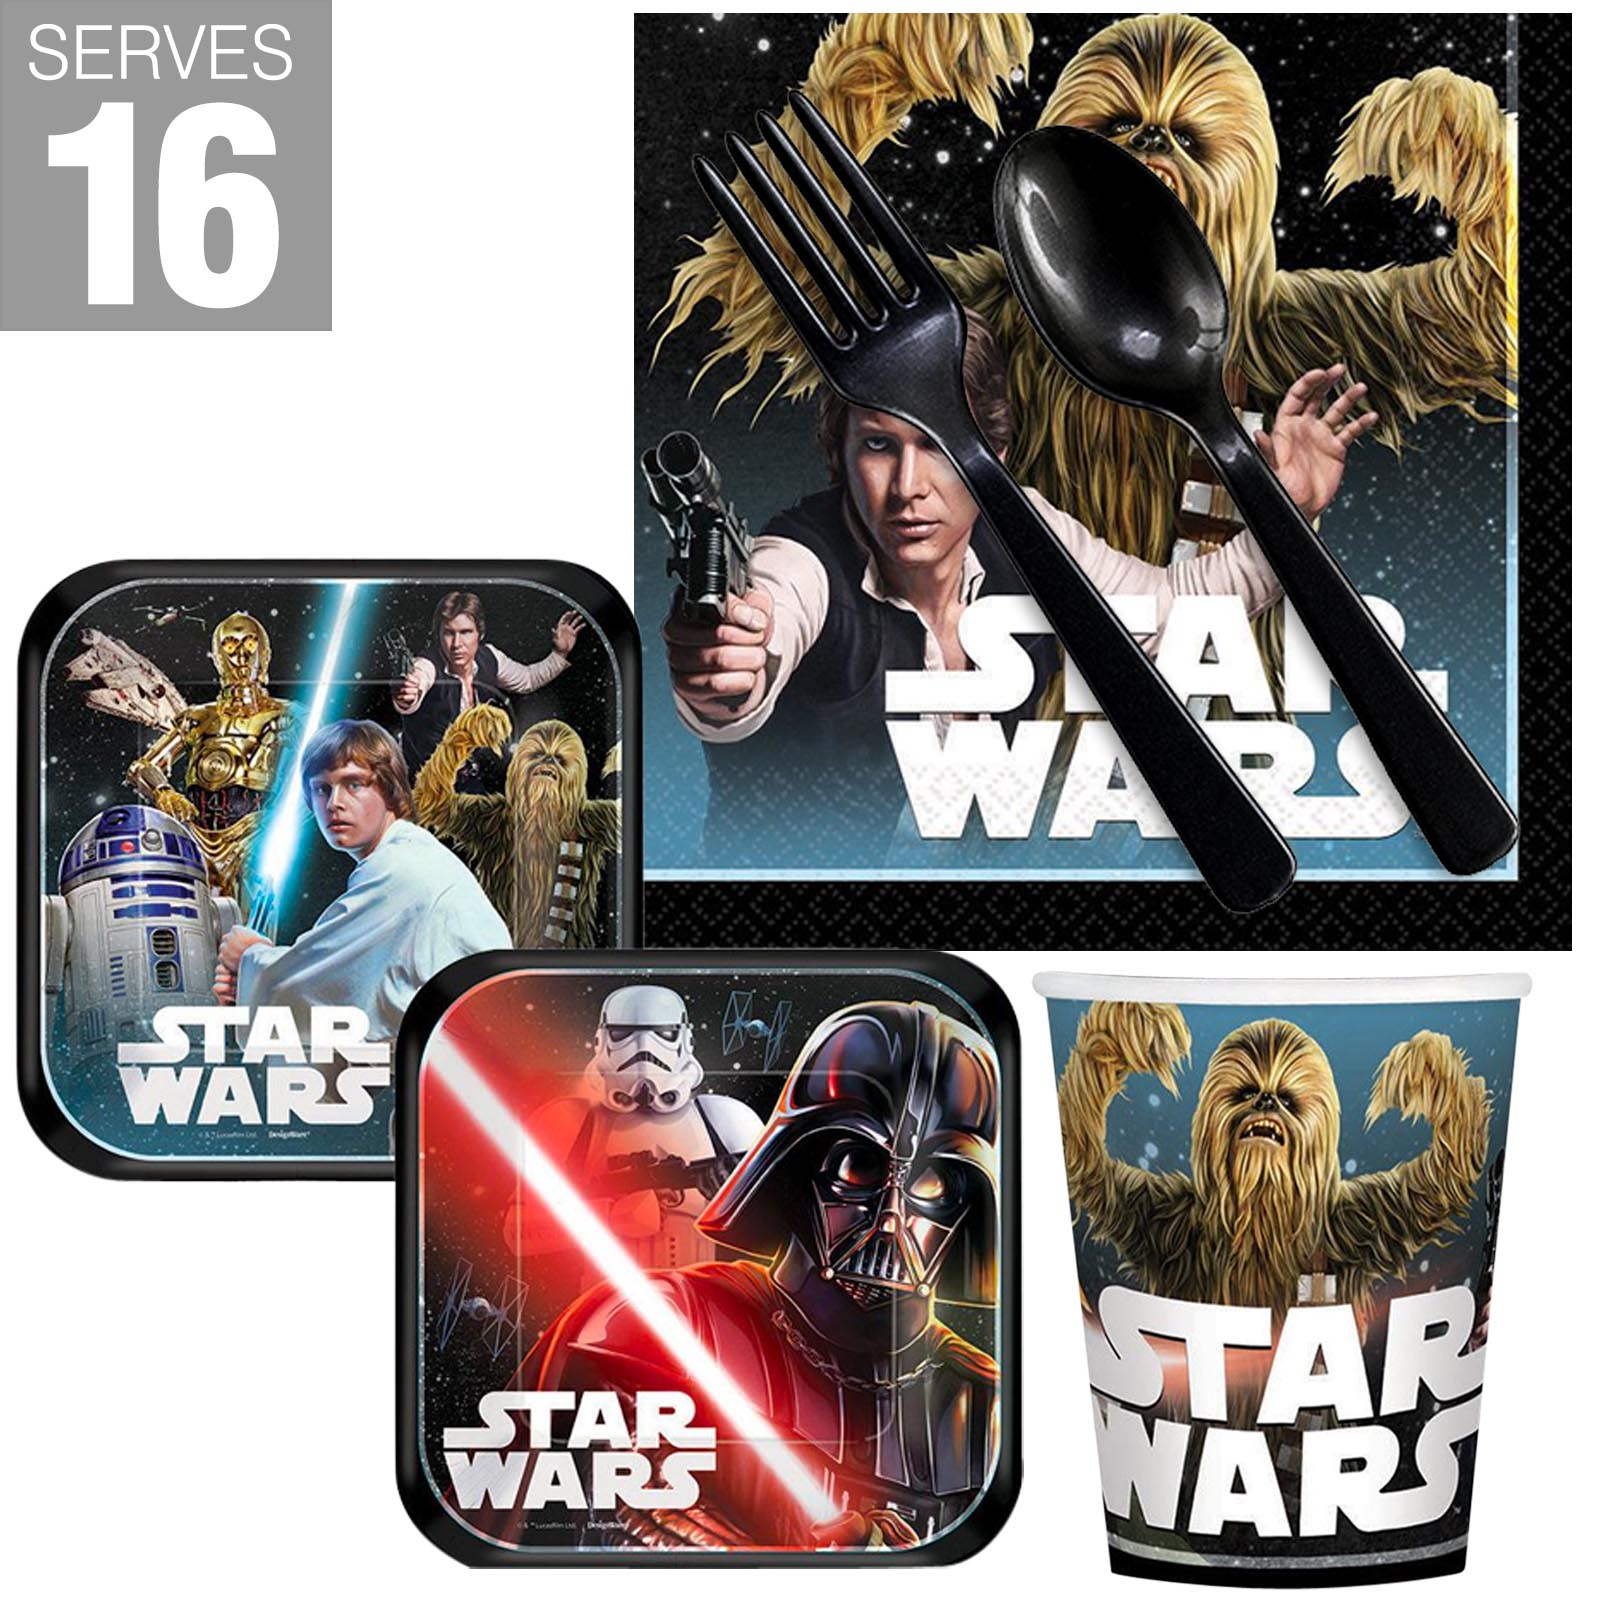 Star Wars Classic Snack Pack For 16